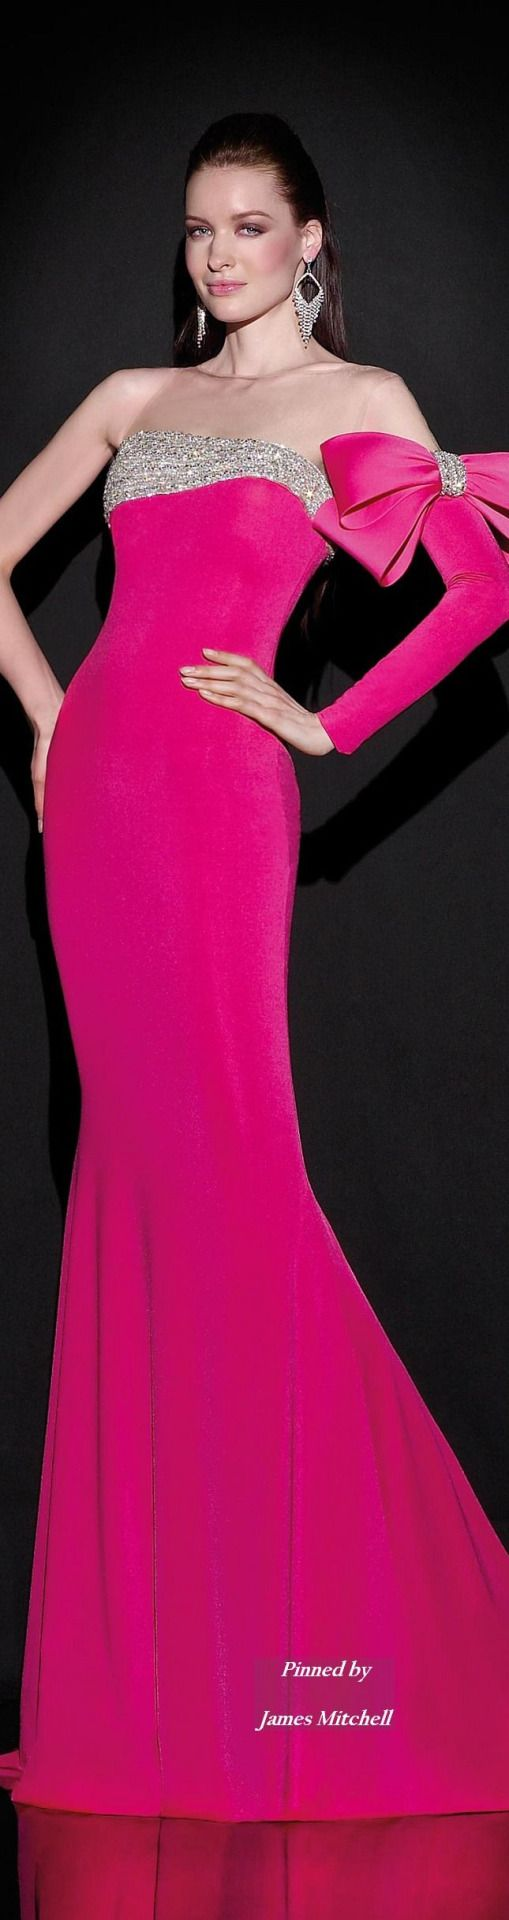 518 best Dresses & Gowns images on Pinterest   Evening gowns, Prom ...